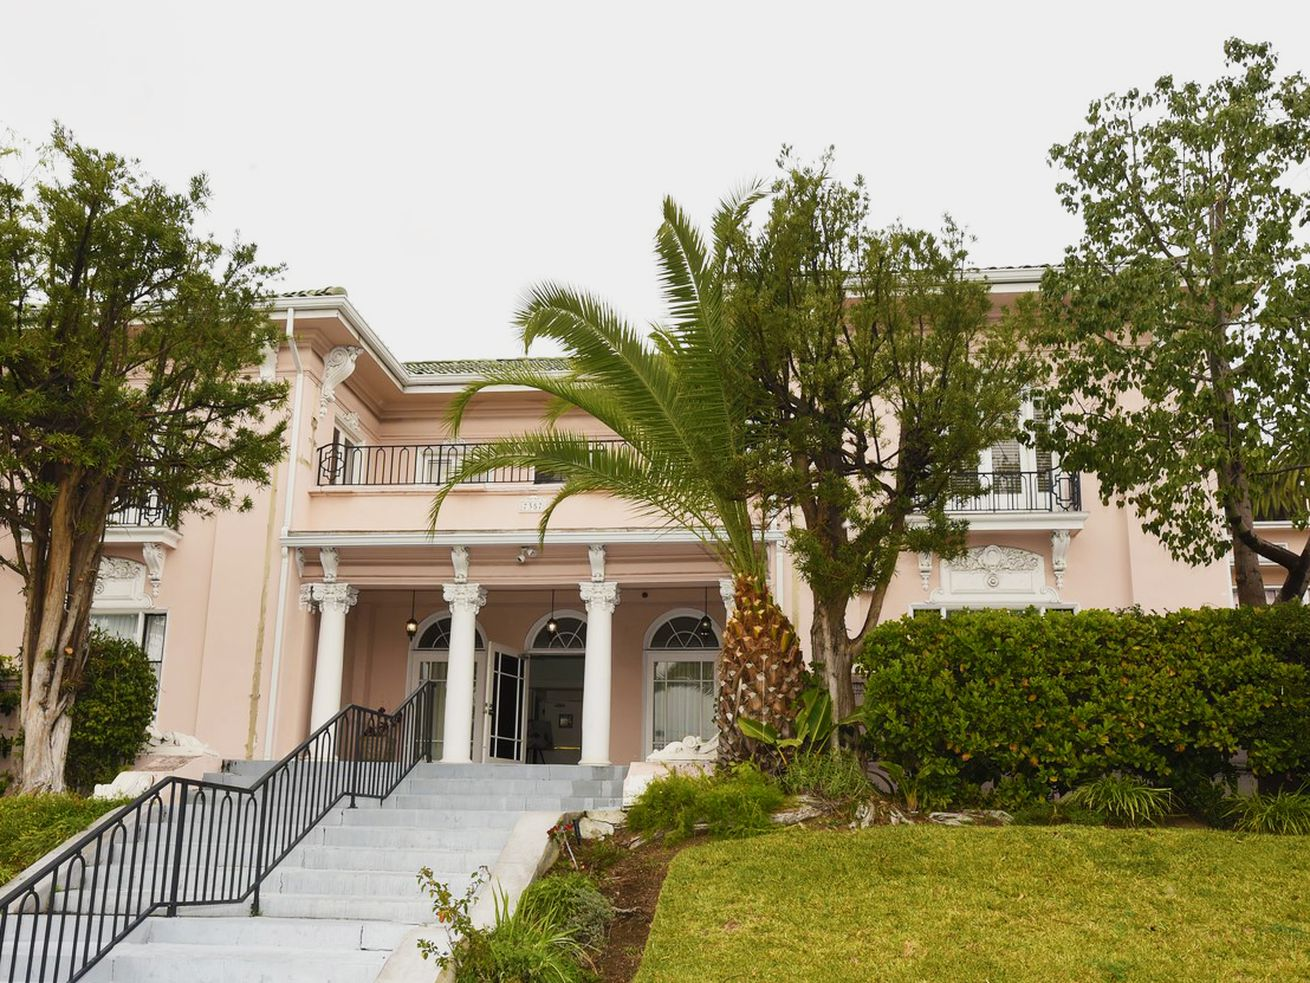 A decadent pink mansion fringed by palm trees sits atop a grassy hillside with a long staircase leading up to it.